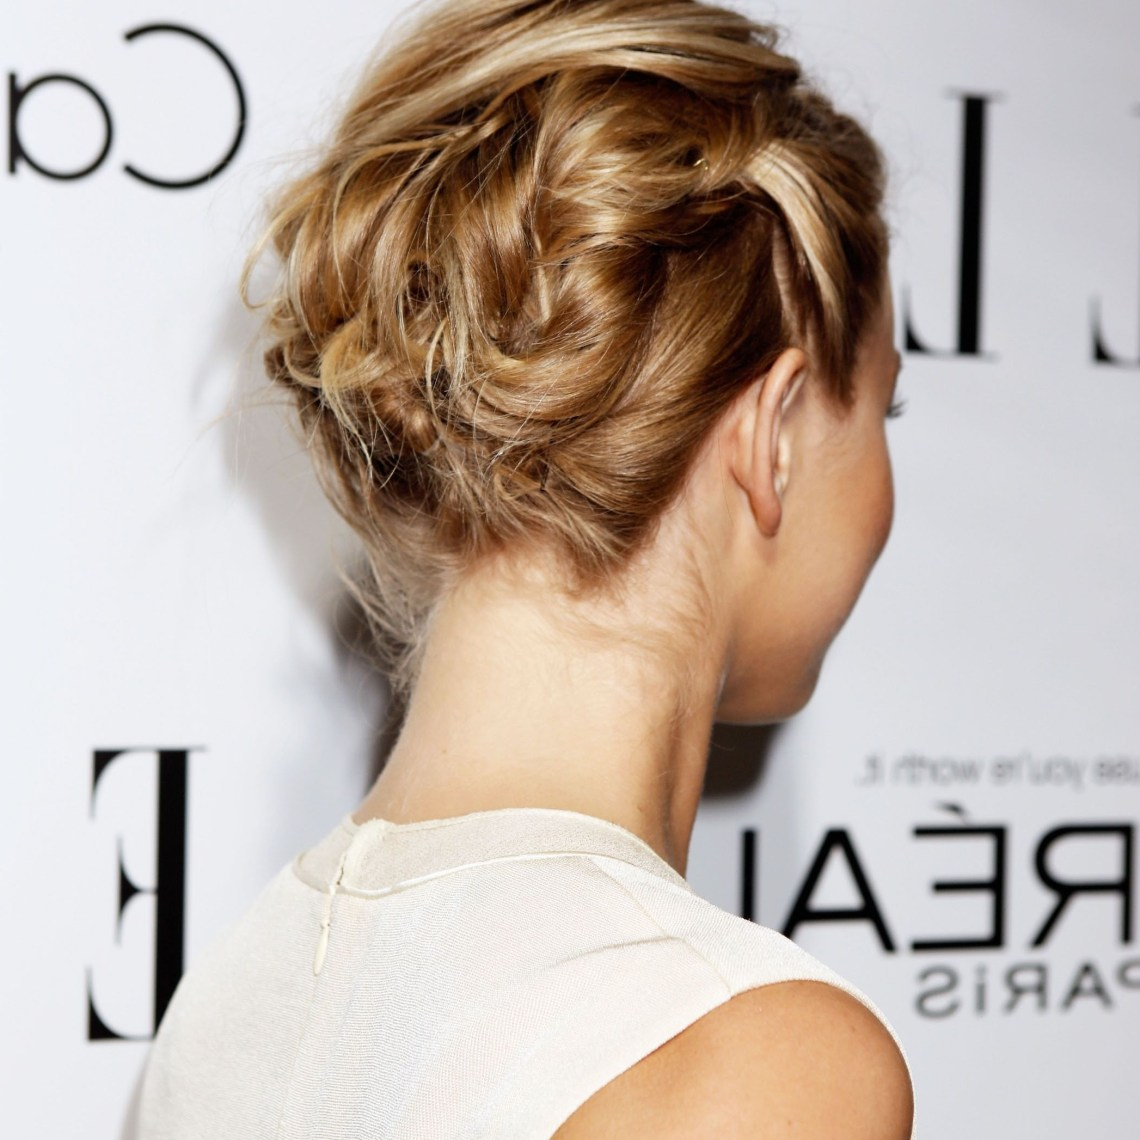 44 Incredibly Chic Updo Ideas For Short Hair 20+ Amazing Medium Length Updo Hairstyles With Bangs